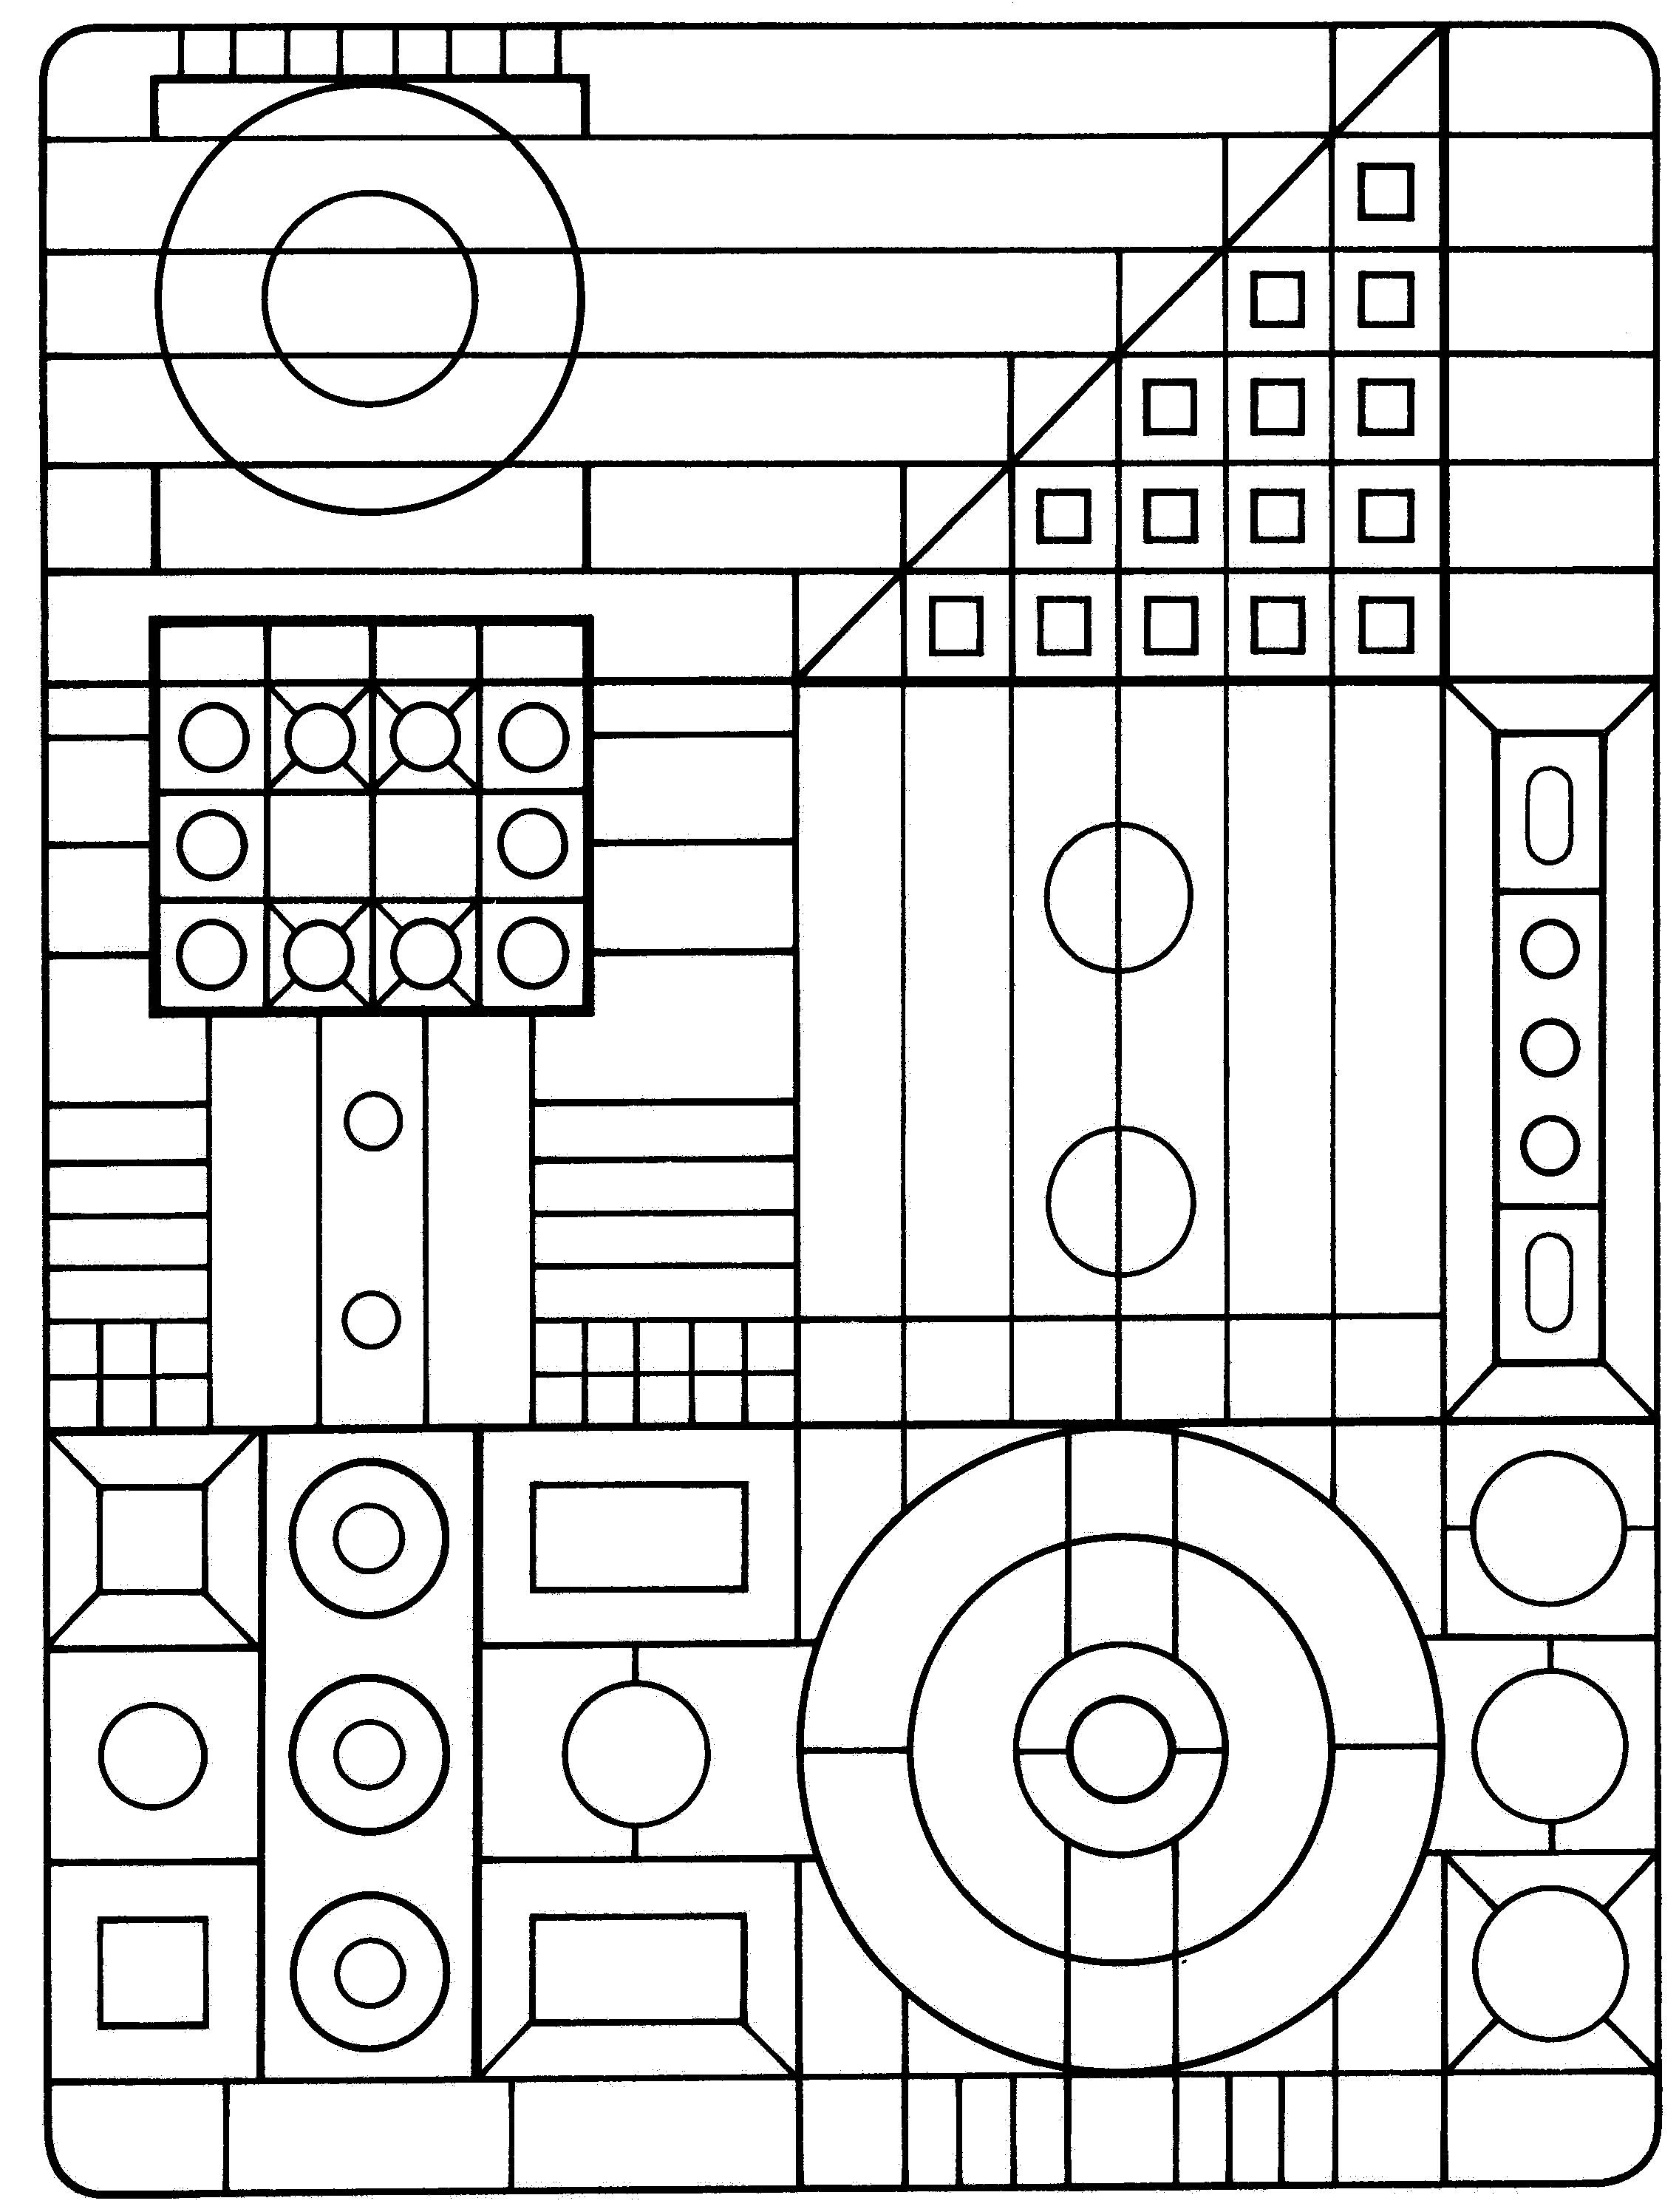 graphic about Printable Geometric Coloring Pages called Cost-free Printable Geometric Coloring Web pages For Little ones